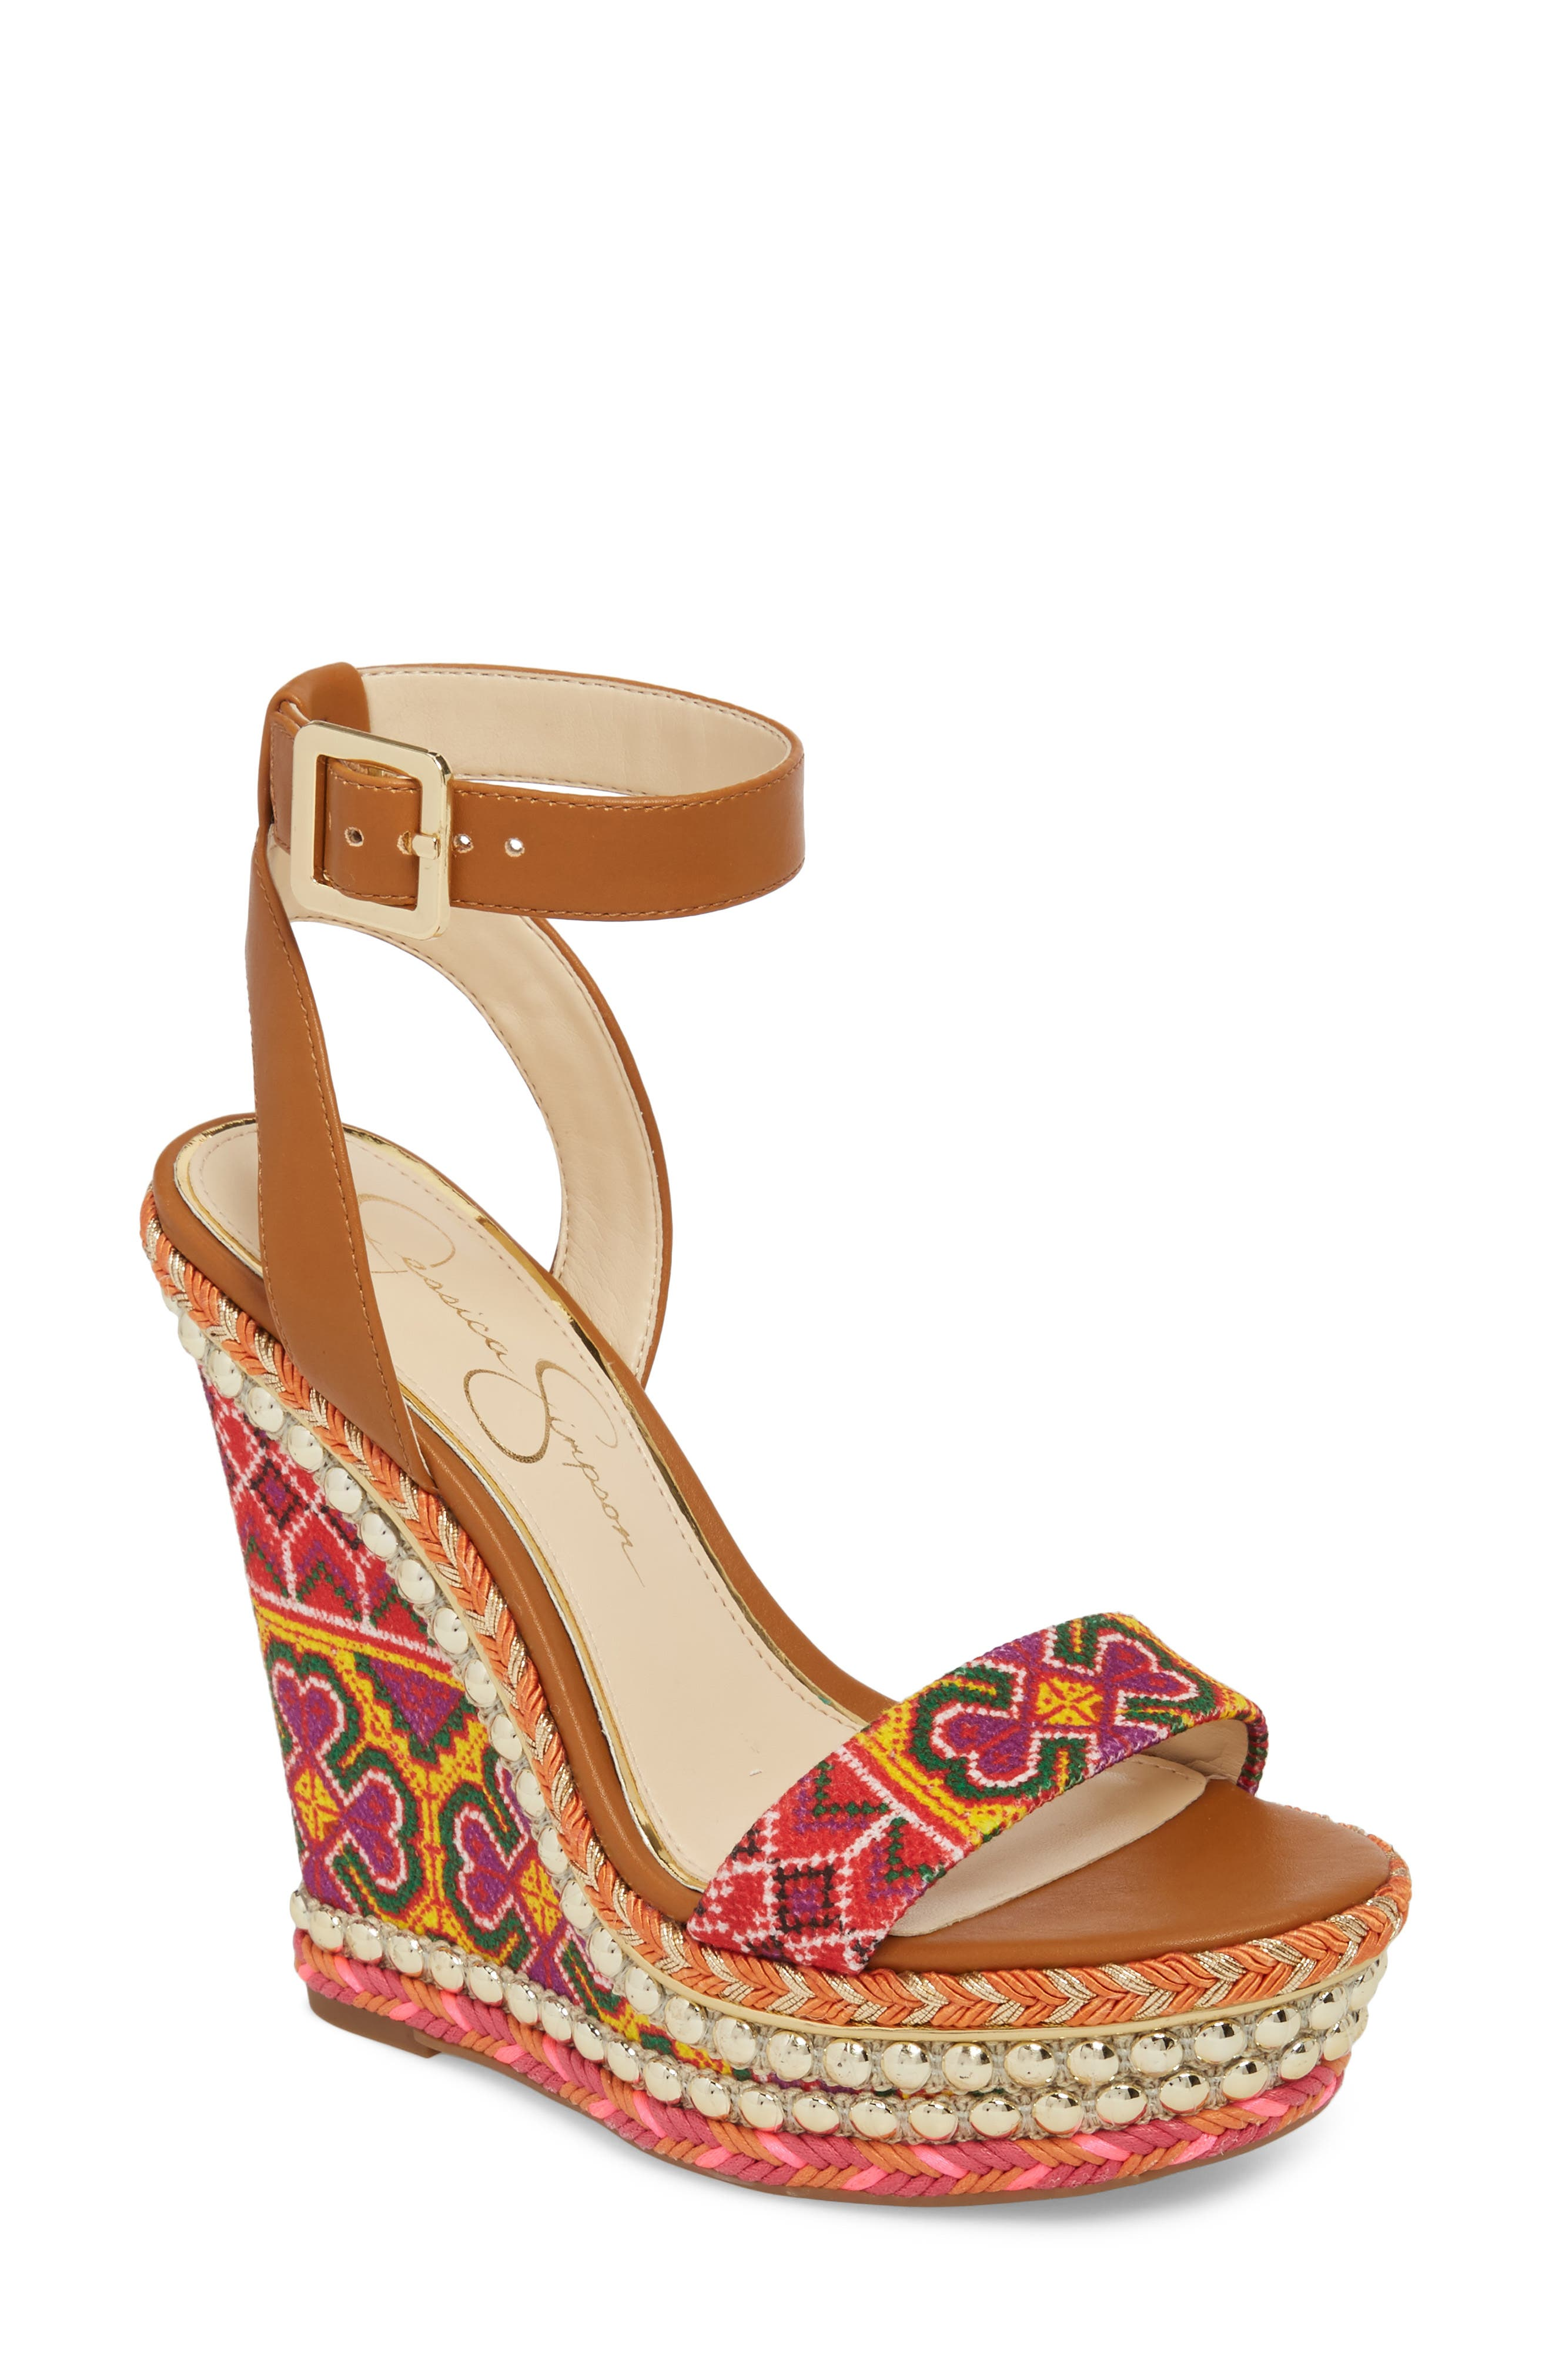 Alinda Embellished Wedge Sandal,                         Main,                         color, Red Multi